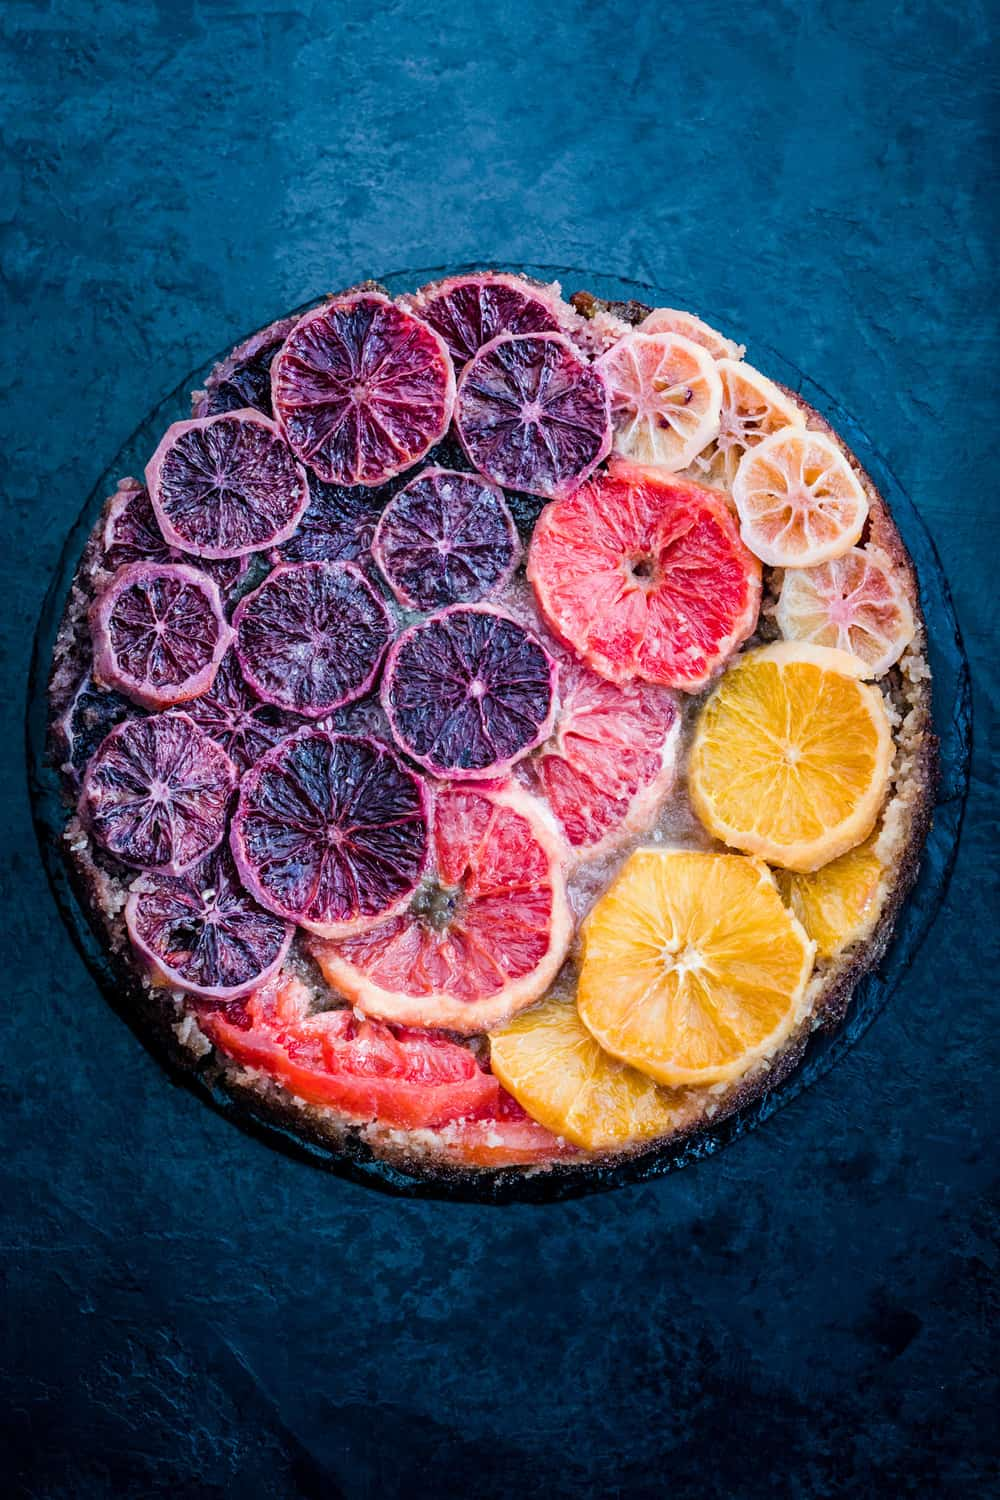 Winter Citrus Upside Down Cake all done, arranged in a rainbow across the cake.